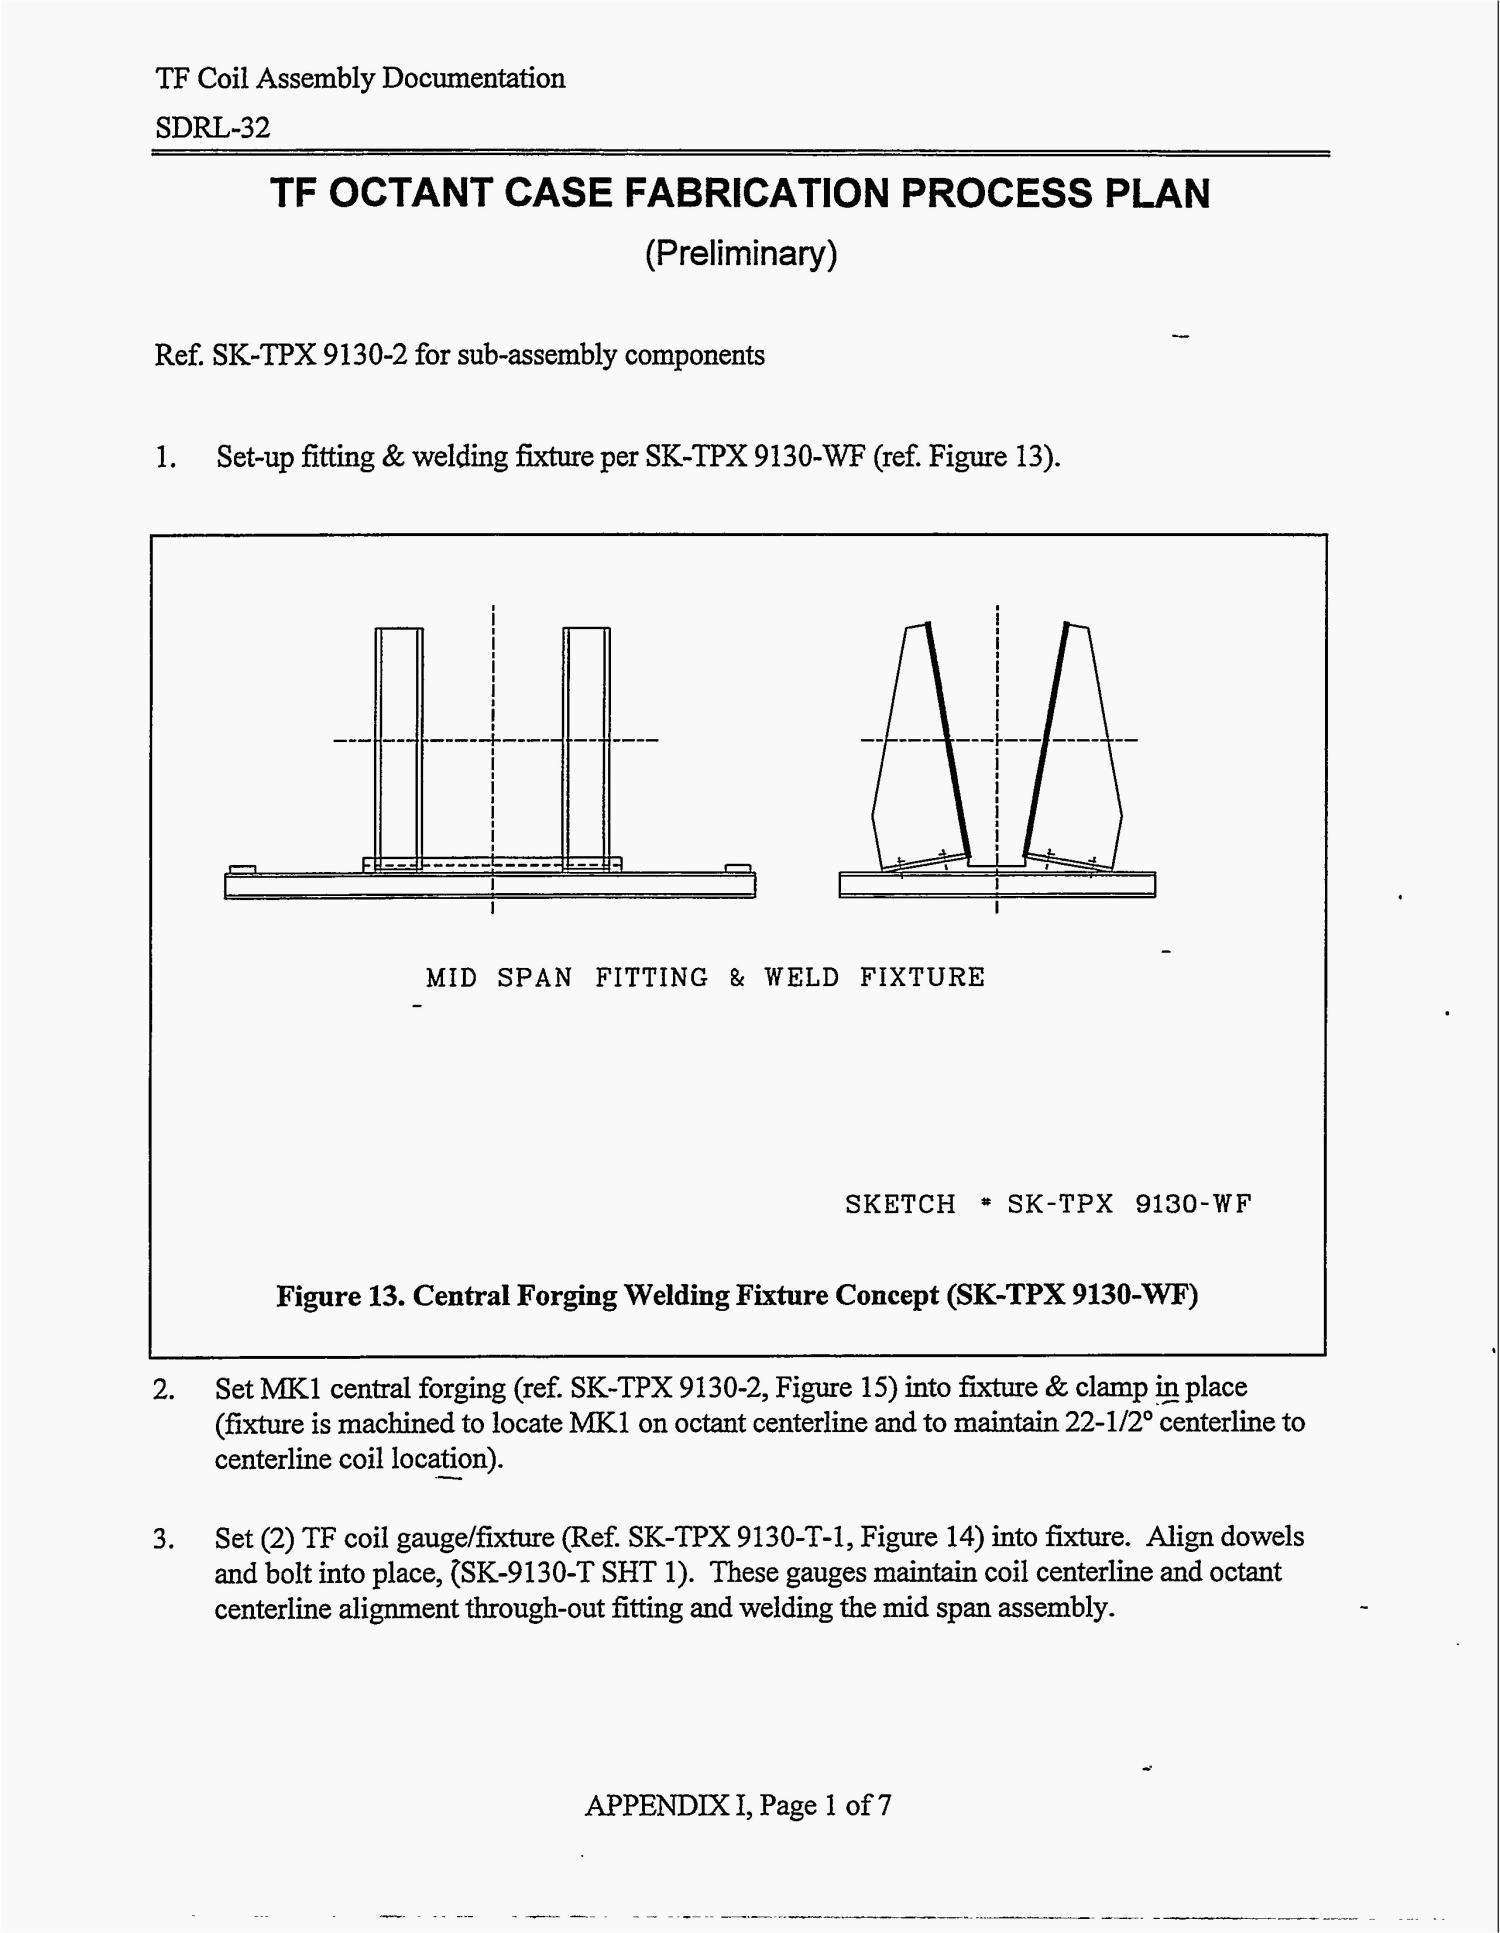 Tokamak Physics Experiment Tpx Toroidal Field Magnet Design Forge Welding Diagram Development And Manufacture Sdrl 32 Coil Assembly Documentation